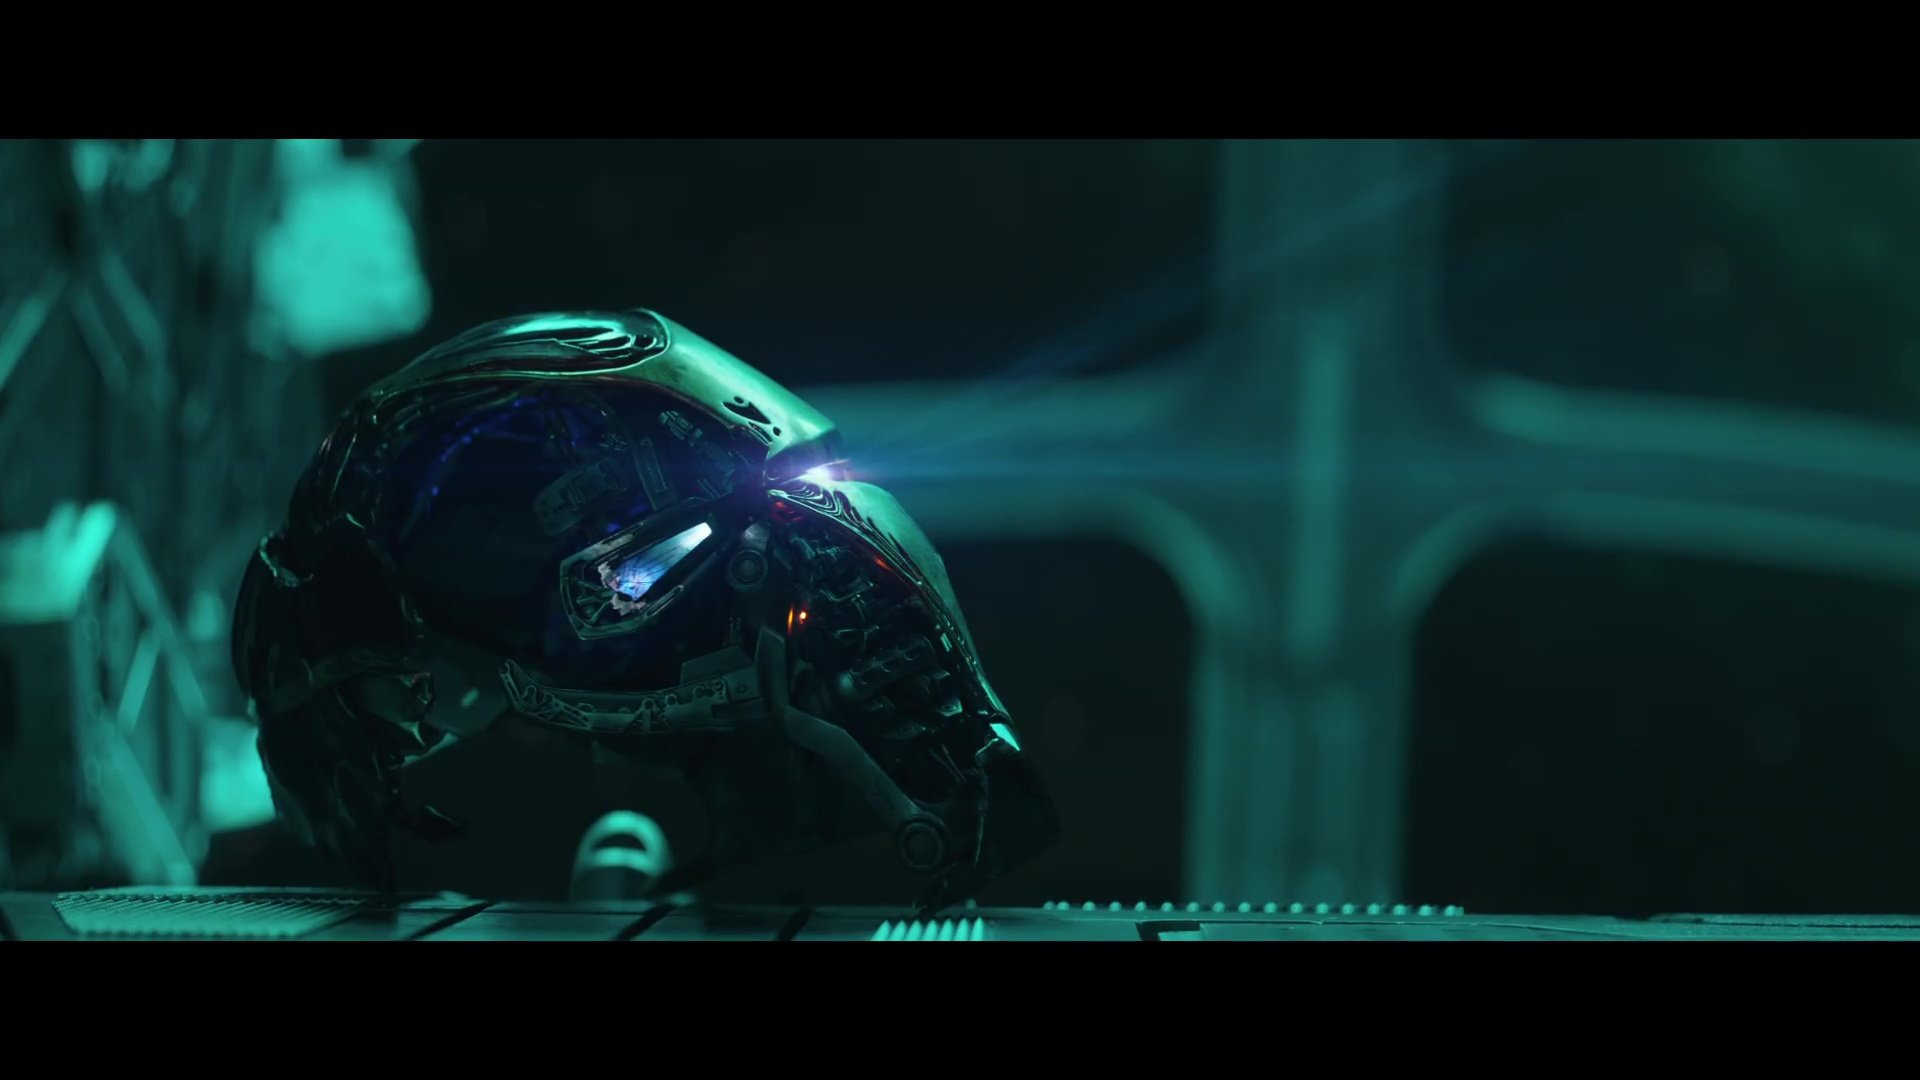 Avengers: Endgame Trailer Screenshots